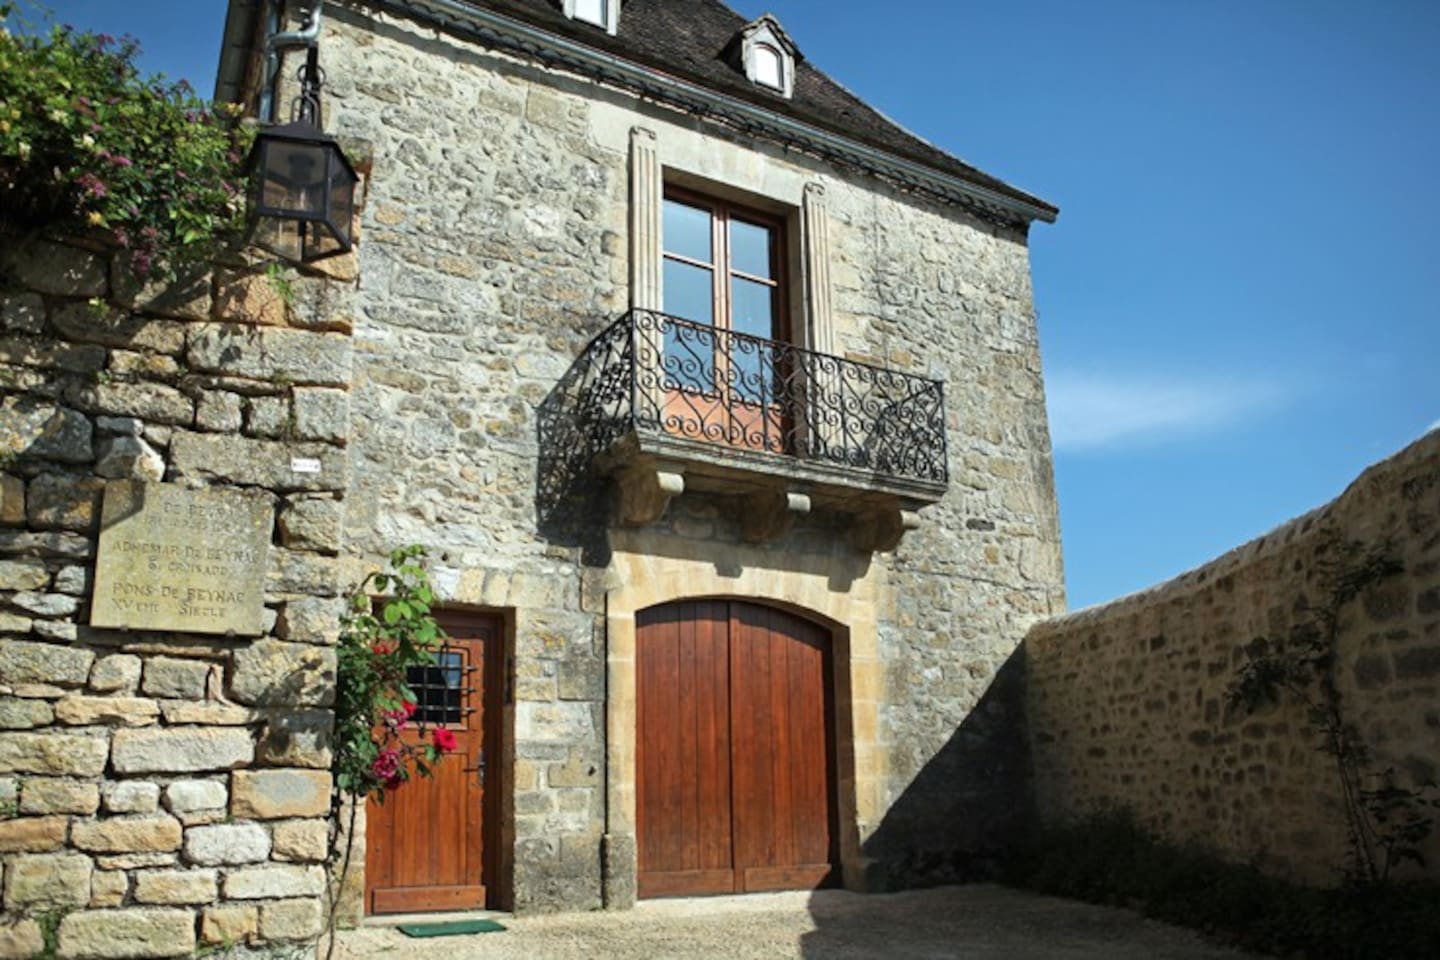 Entrance of the apartment, in the village of Beynac